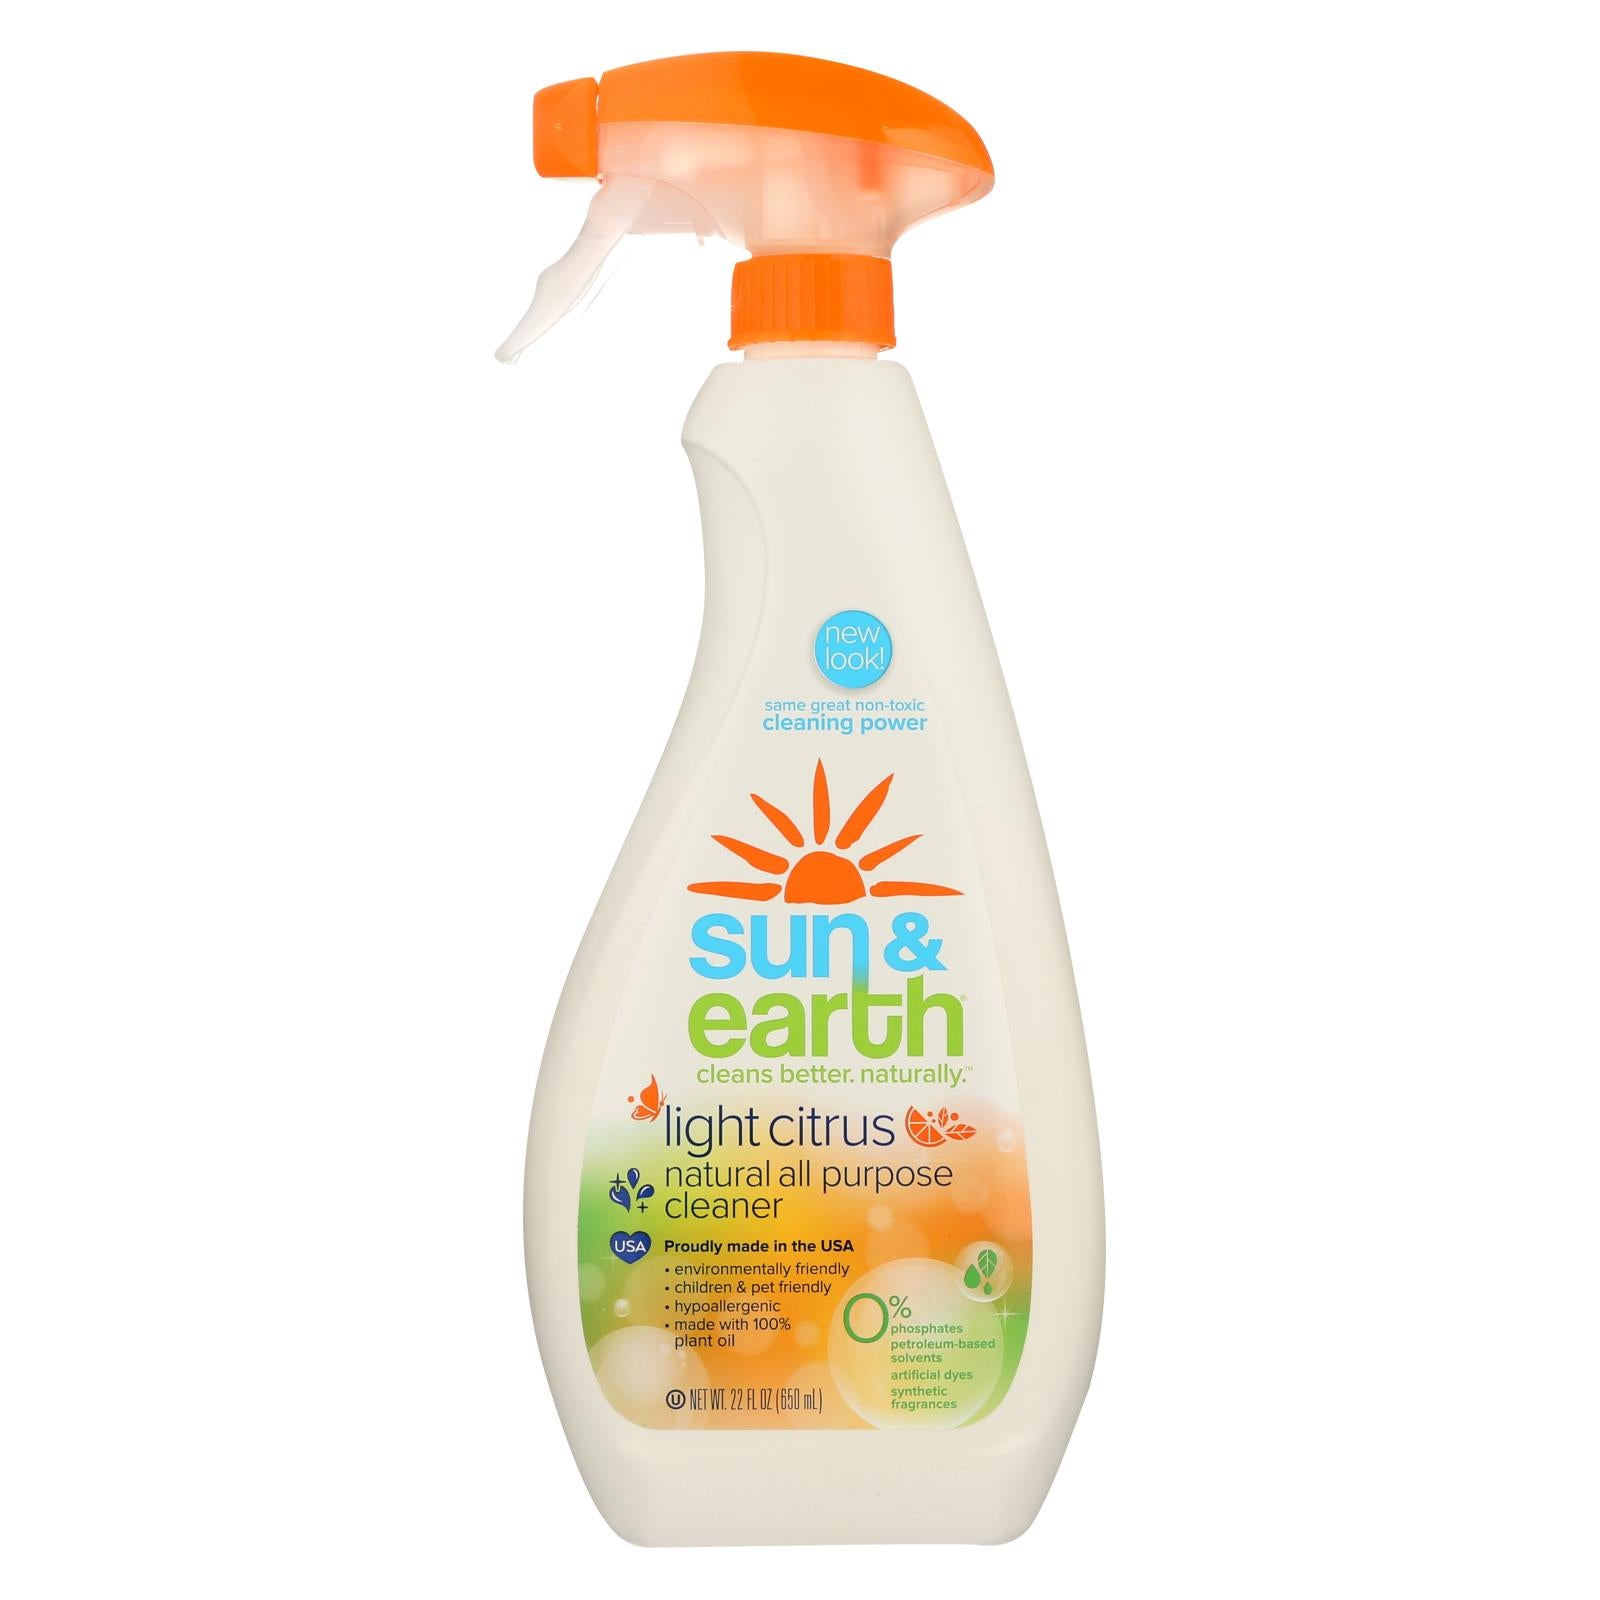 Buy Sun and Earth All Purpose Cleaner - 22 oz - Household Cleaners from Veroeco.com